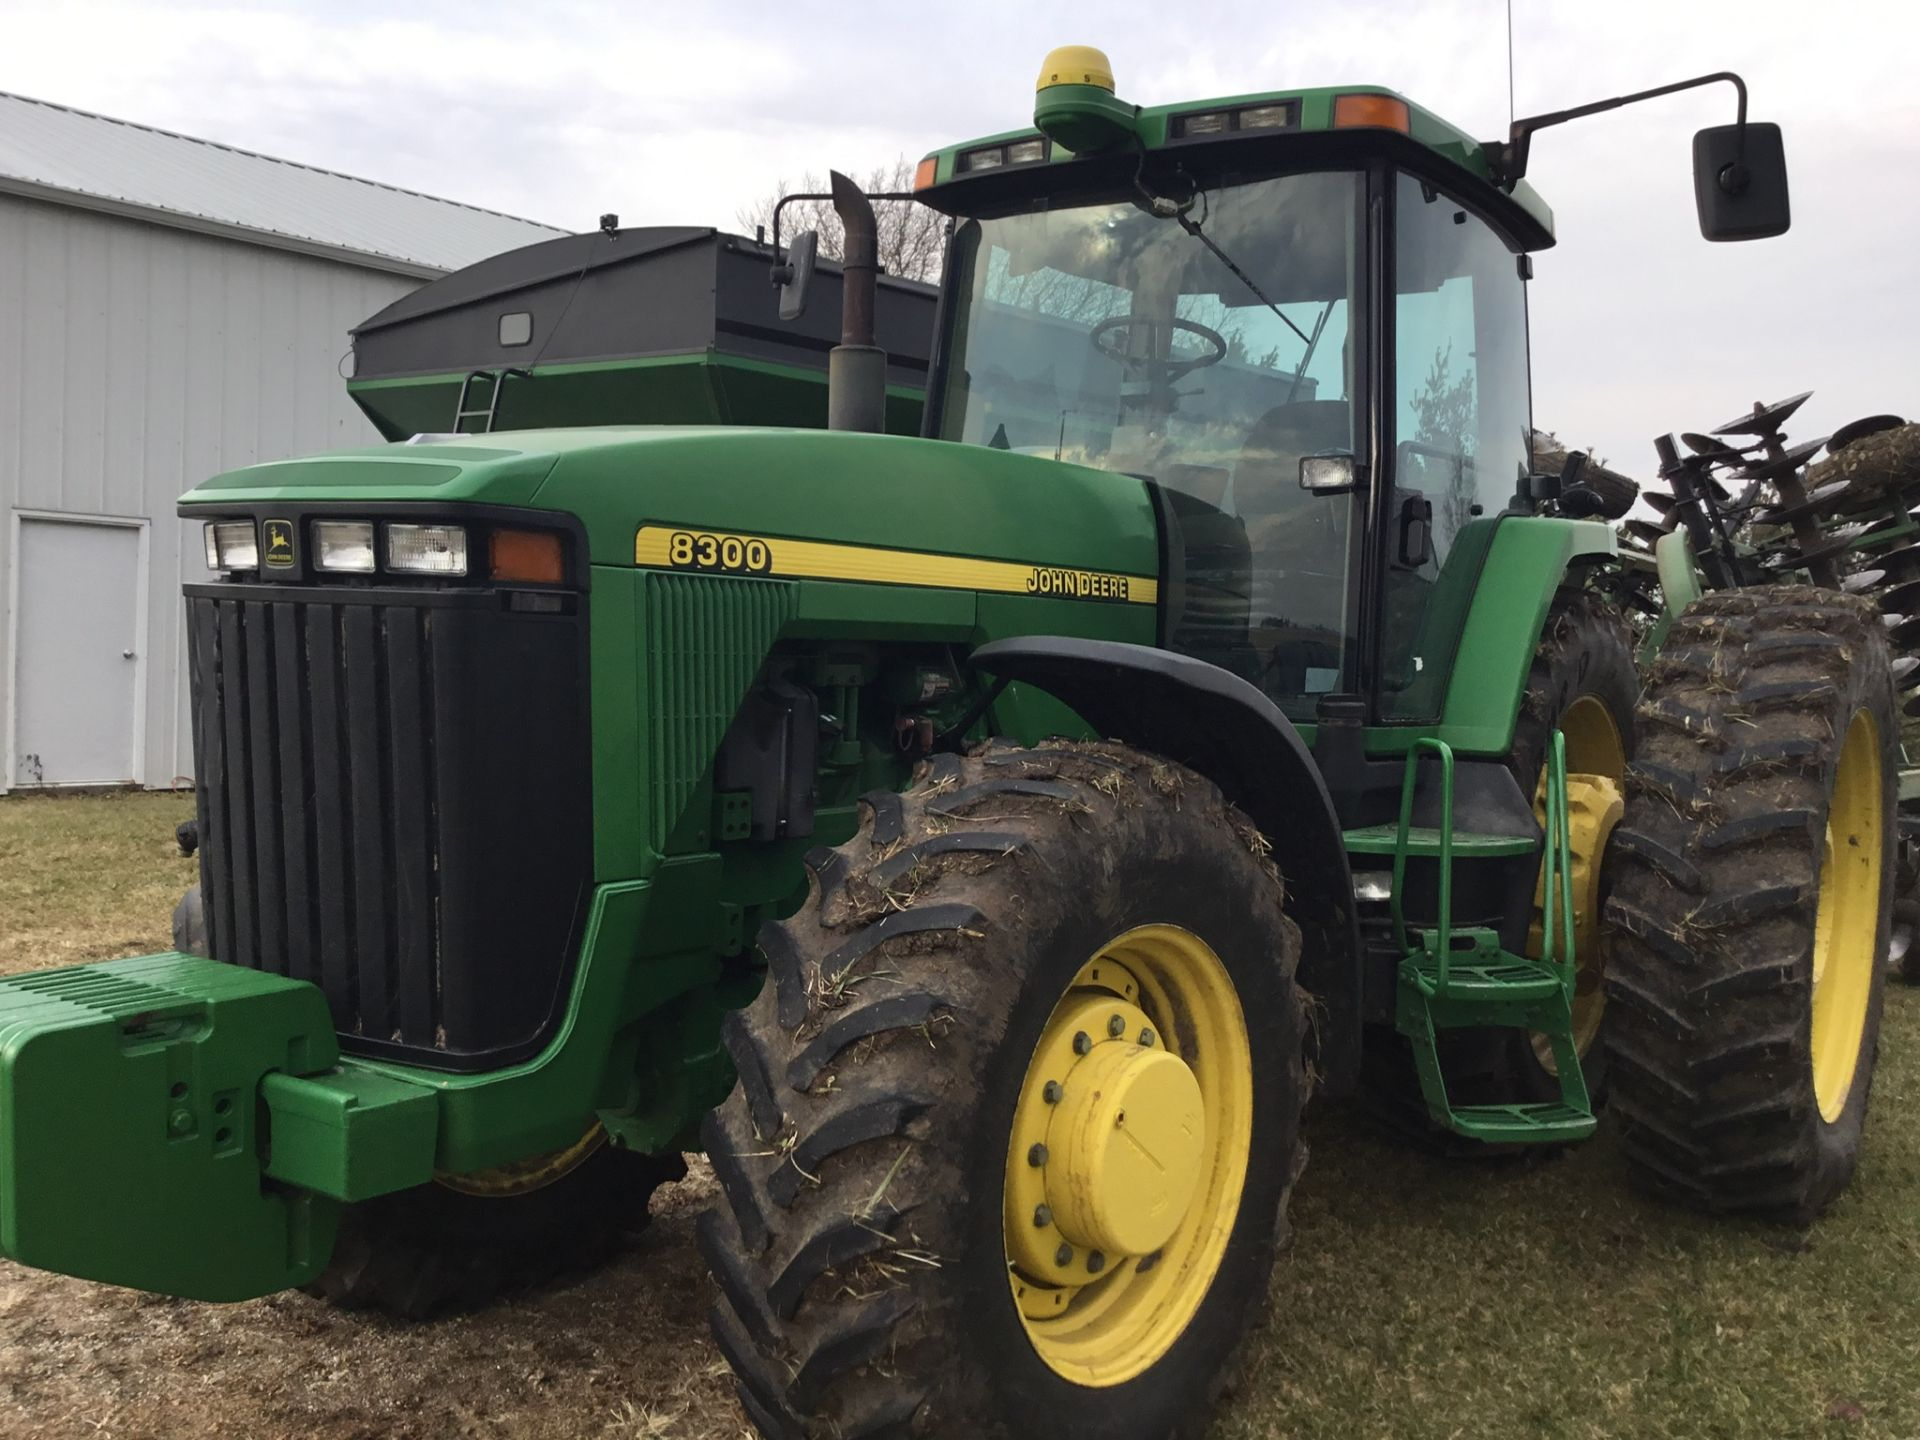 1997 John Deere 8300 MFWD, Power Shift, 3 Hydraulic Remotes, 3 Pt., Quick Hitch, PTO, Green Star - Image 8 of 25